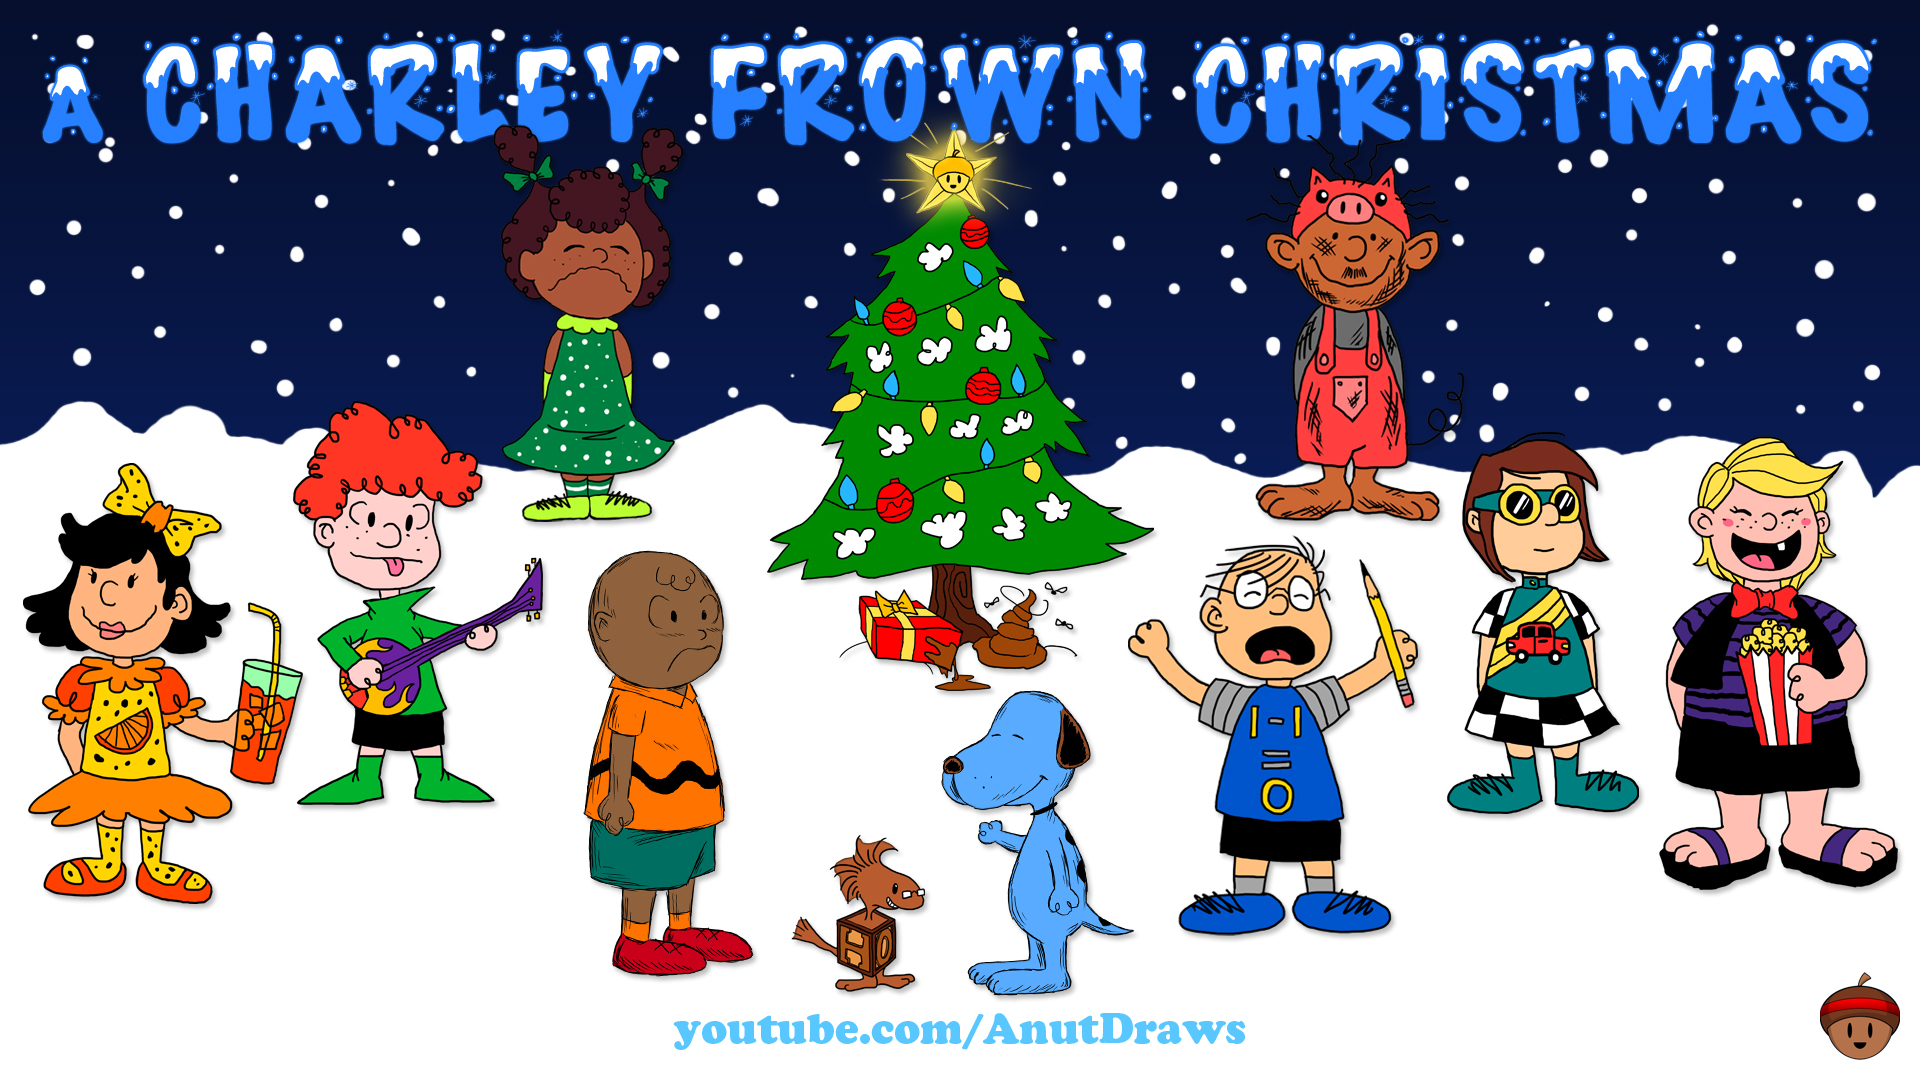 Charlie Brown Christmas Computer Wallpapers Desktop Backgrounds 1920x1080